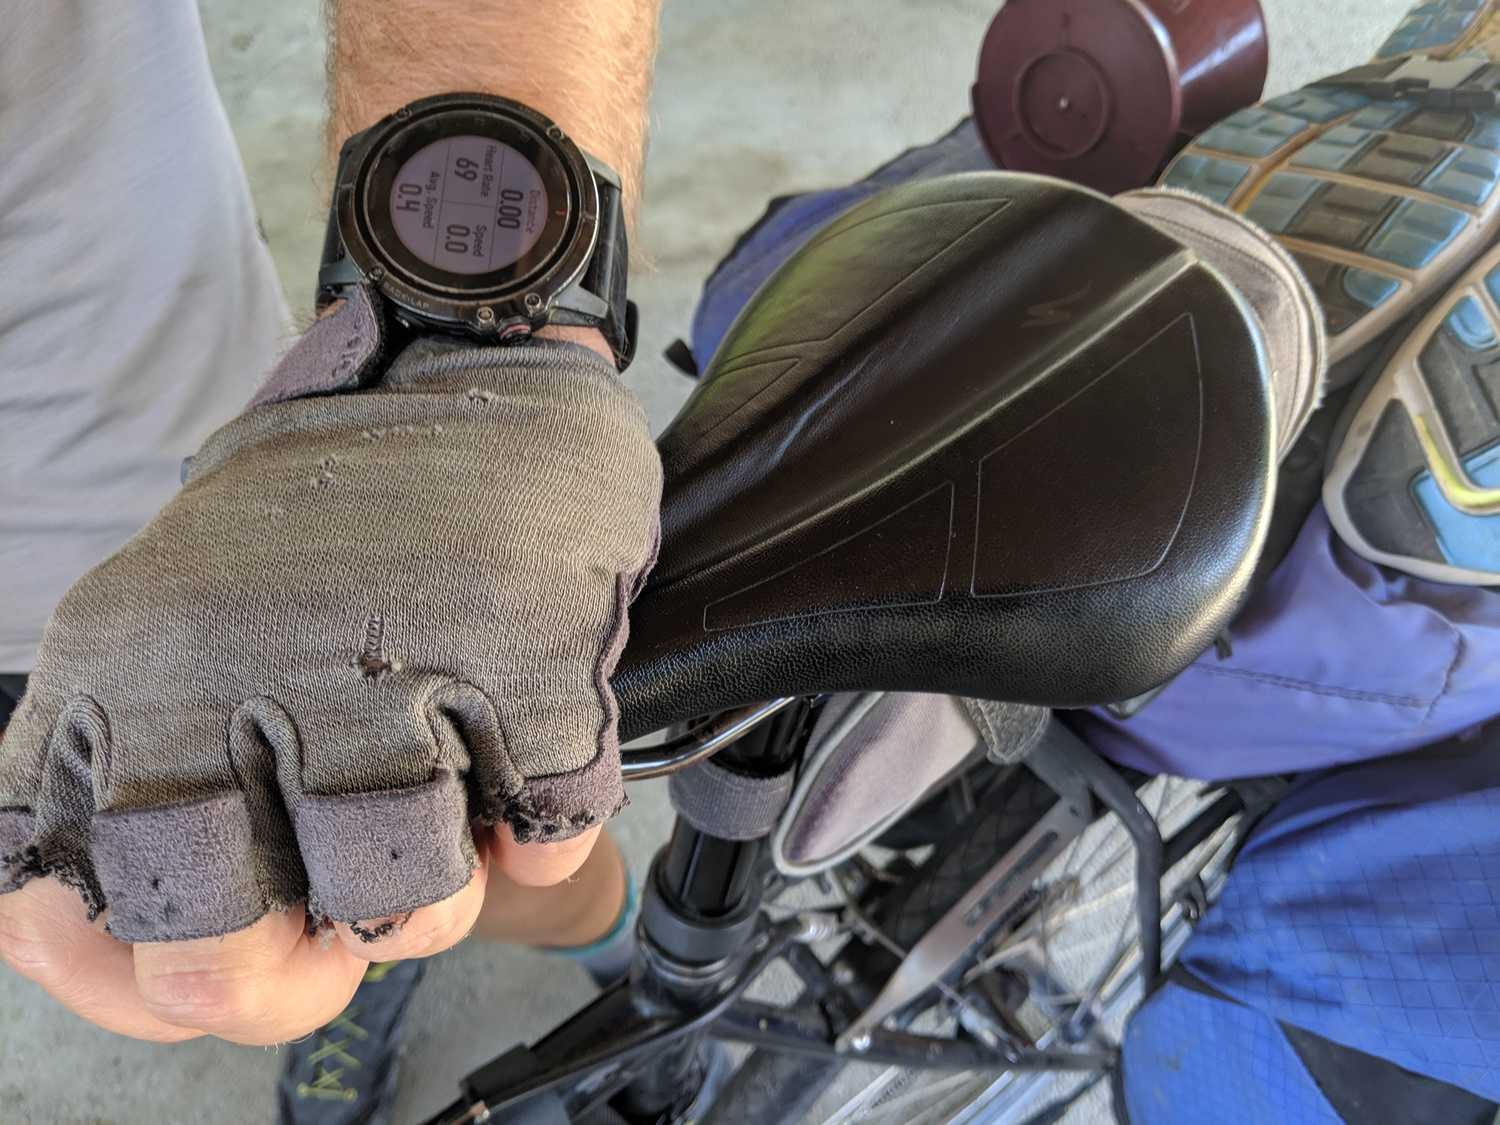 Bike gloves protect your hands from the sun and keep a better (less sweaty) grip on your handlebars.   Photo by Liz Thomas.